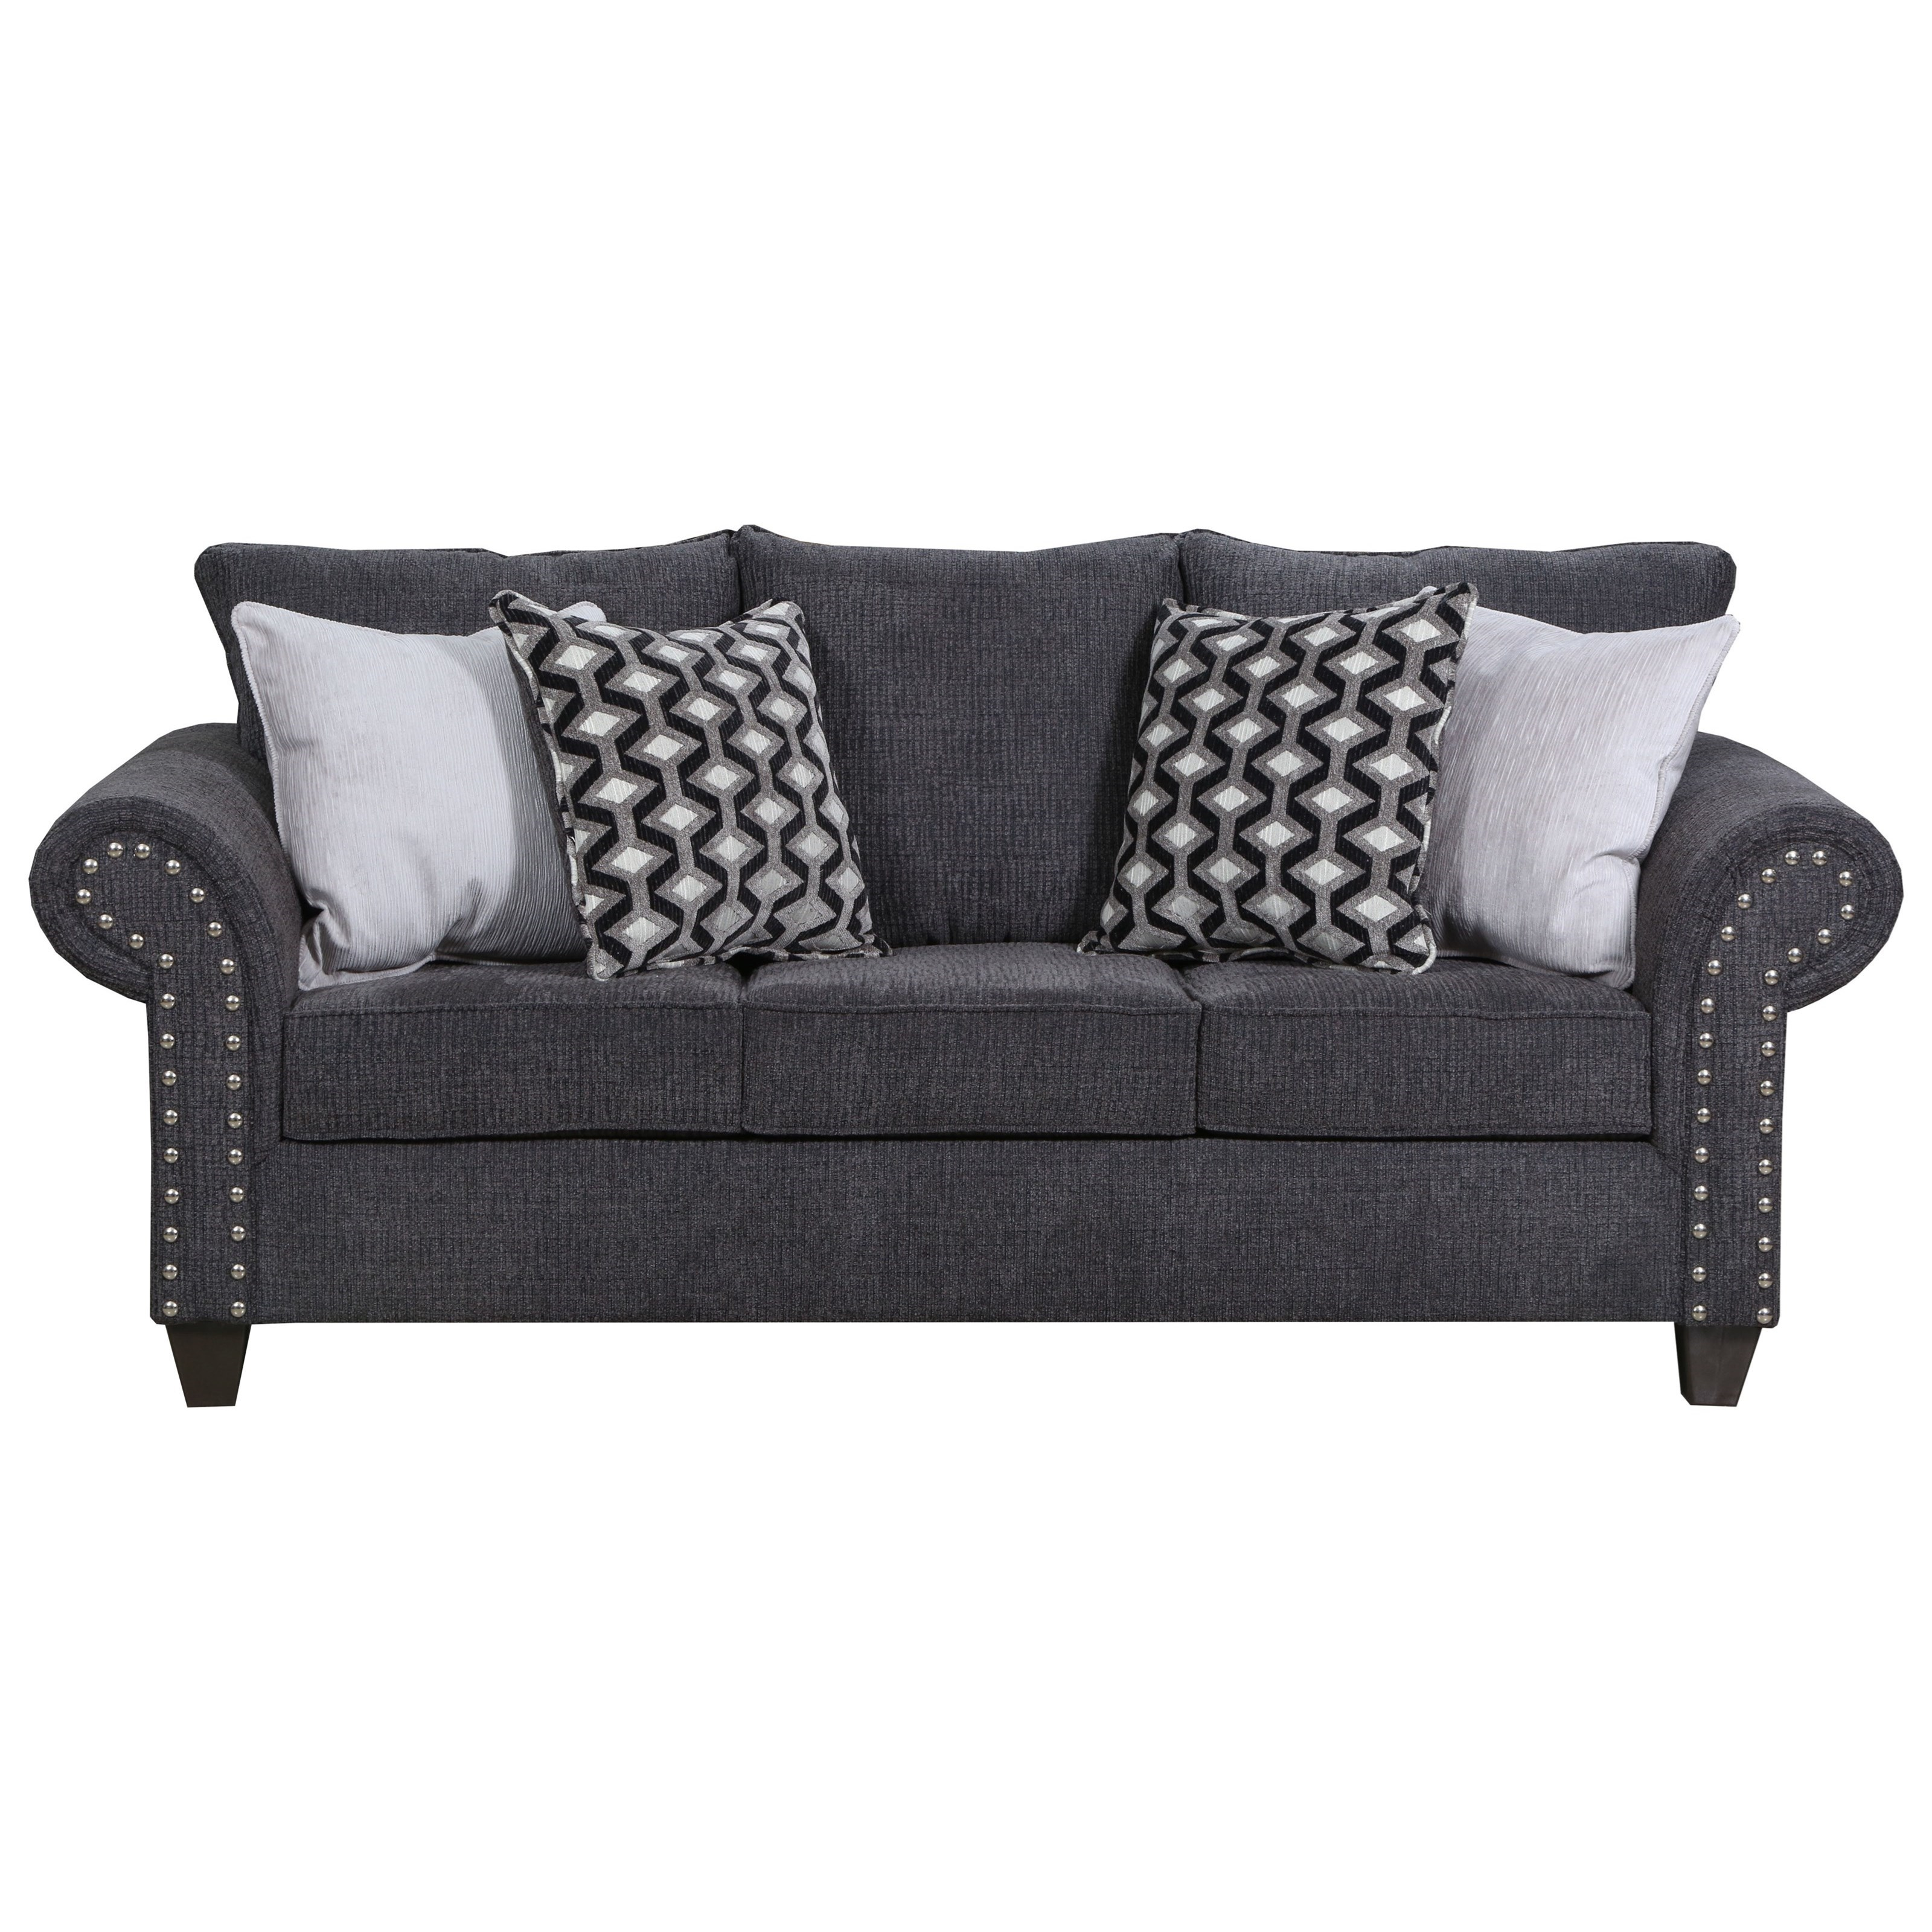 8036 Sofa Sleeper by United Furniture Industries at Dream Home Interiors